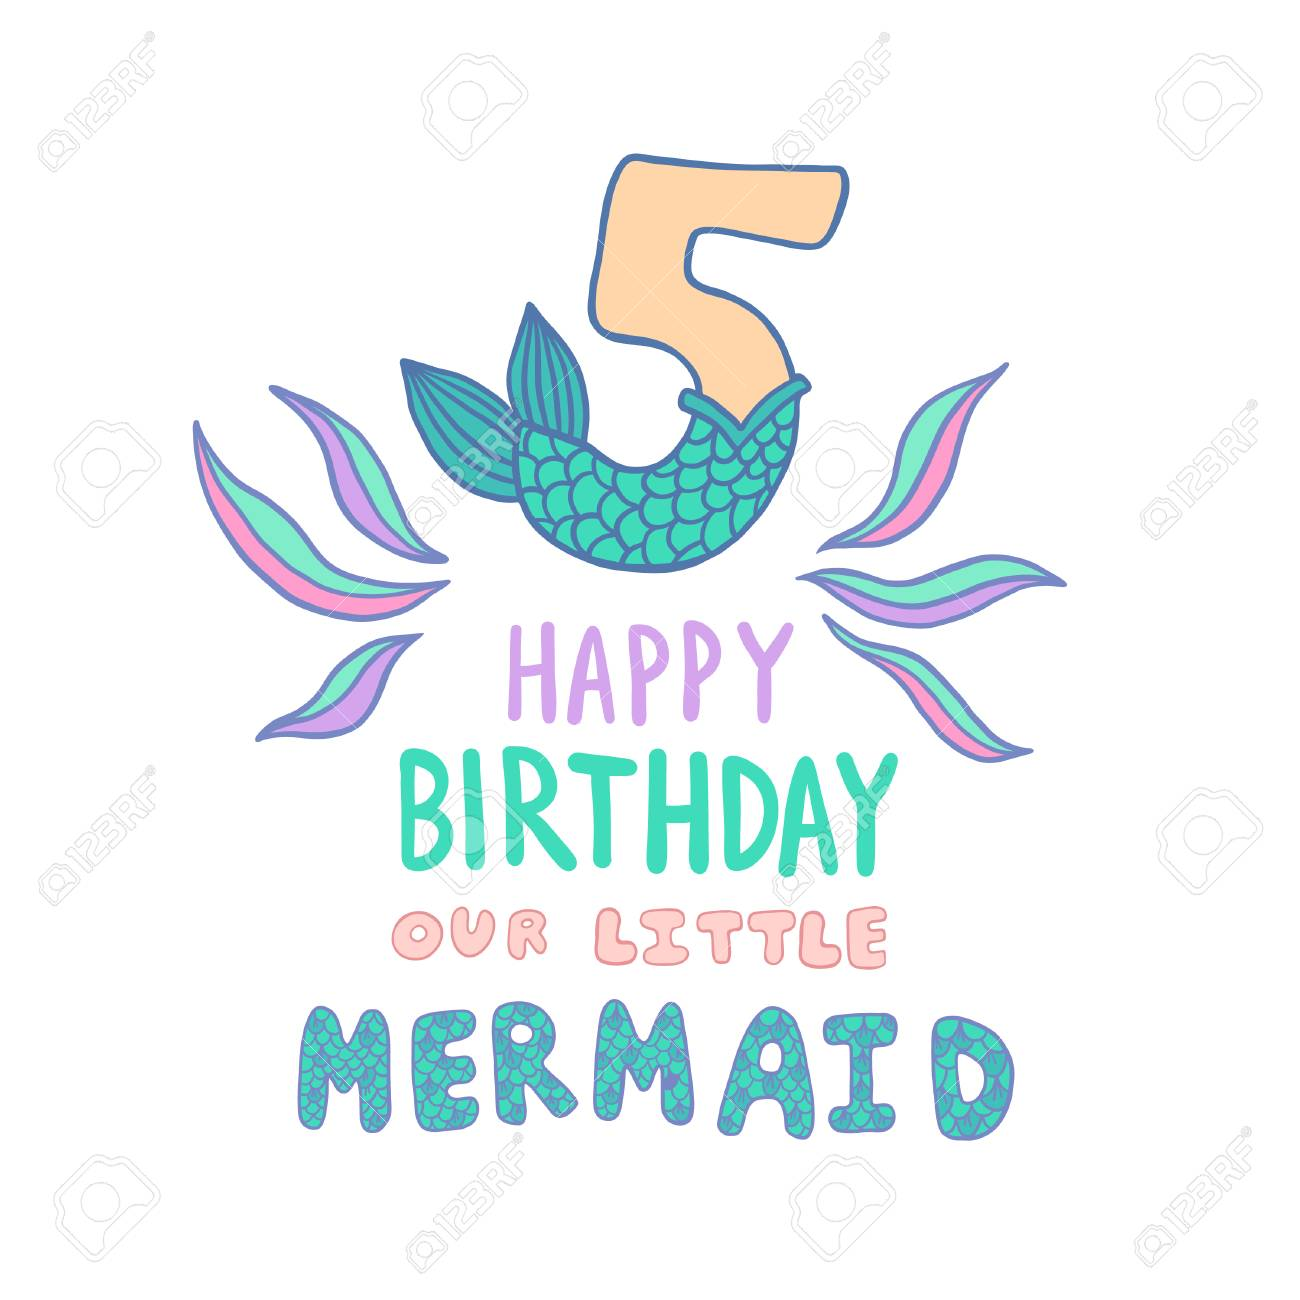 Number Five With Mermaid Tail Vector Illustration Royalty Free Cliparts Vectors And Stock Illustration Image 110476330